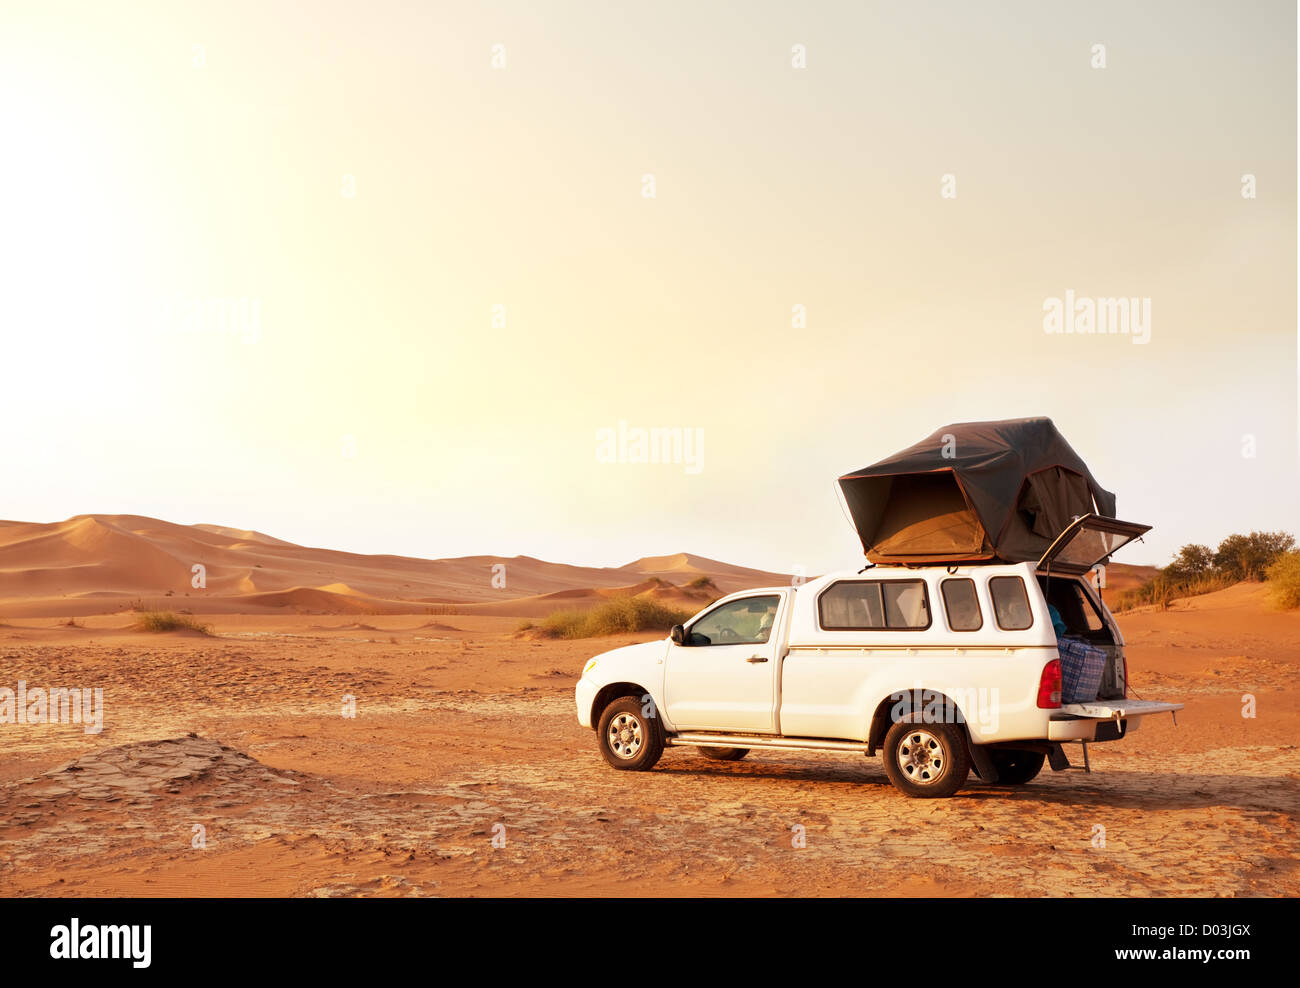 Camp in expedition Stockbild